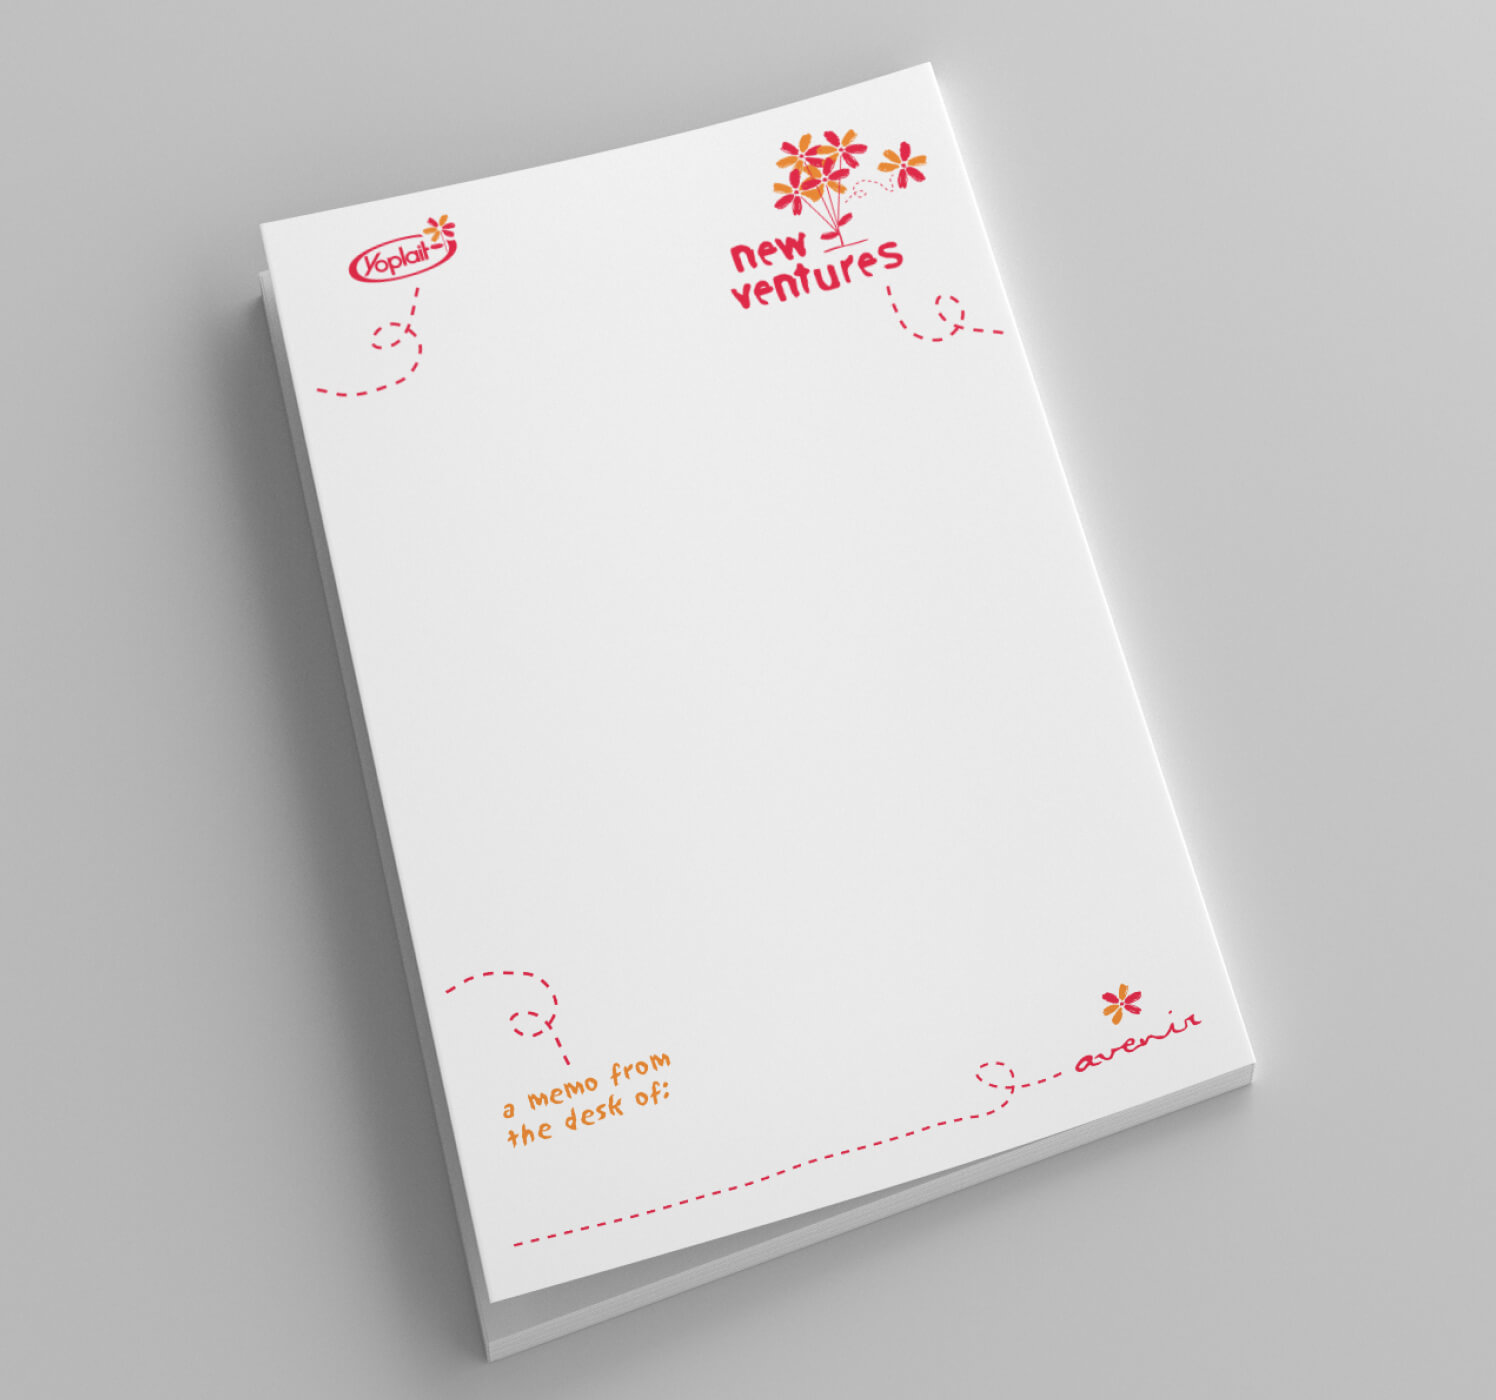 yoplait new ventures memo pad image